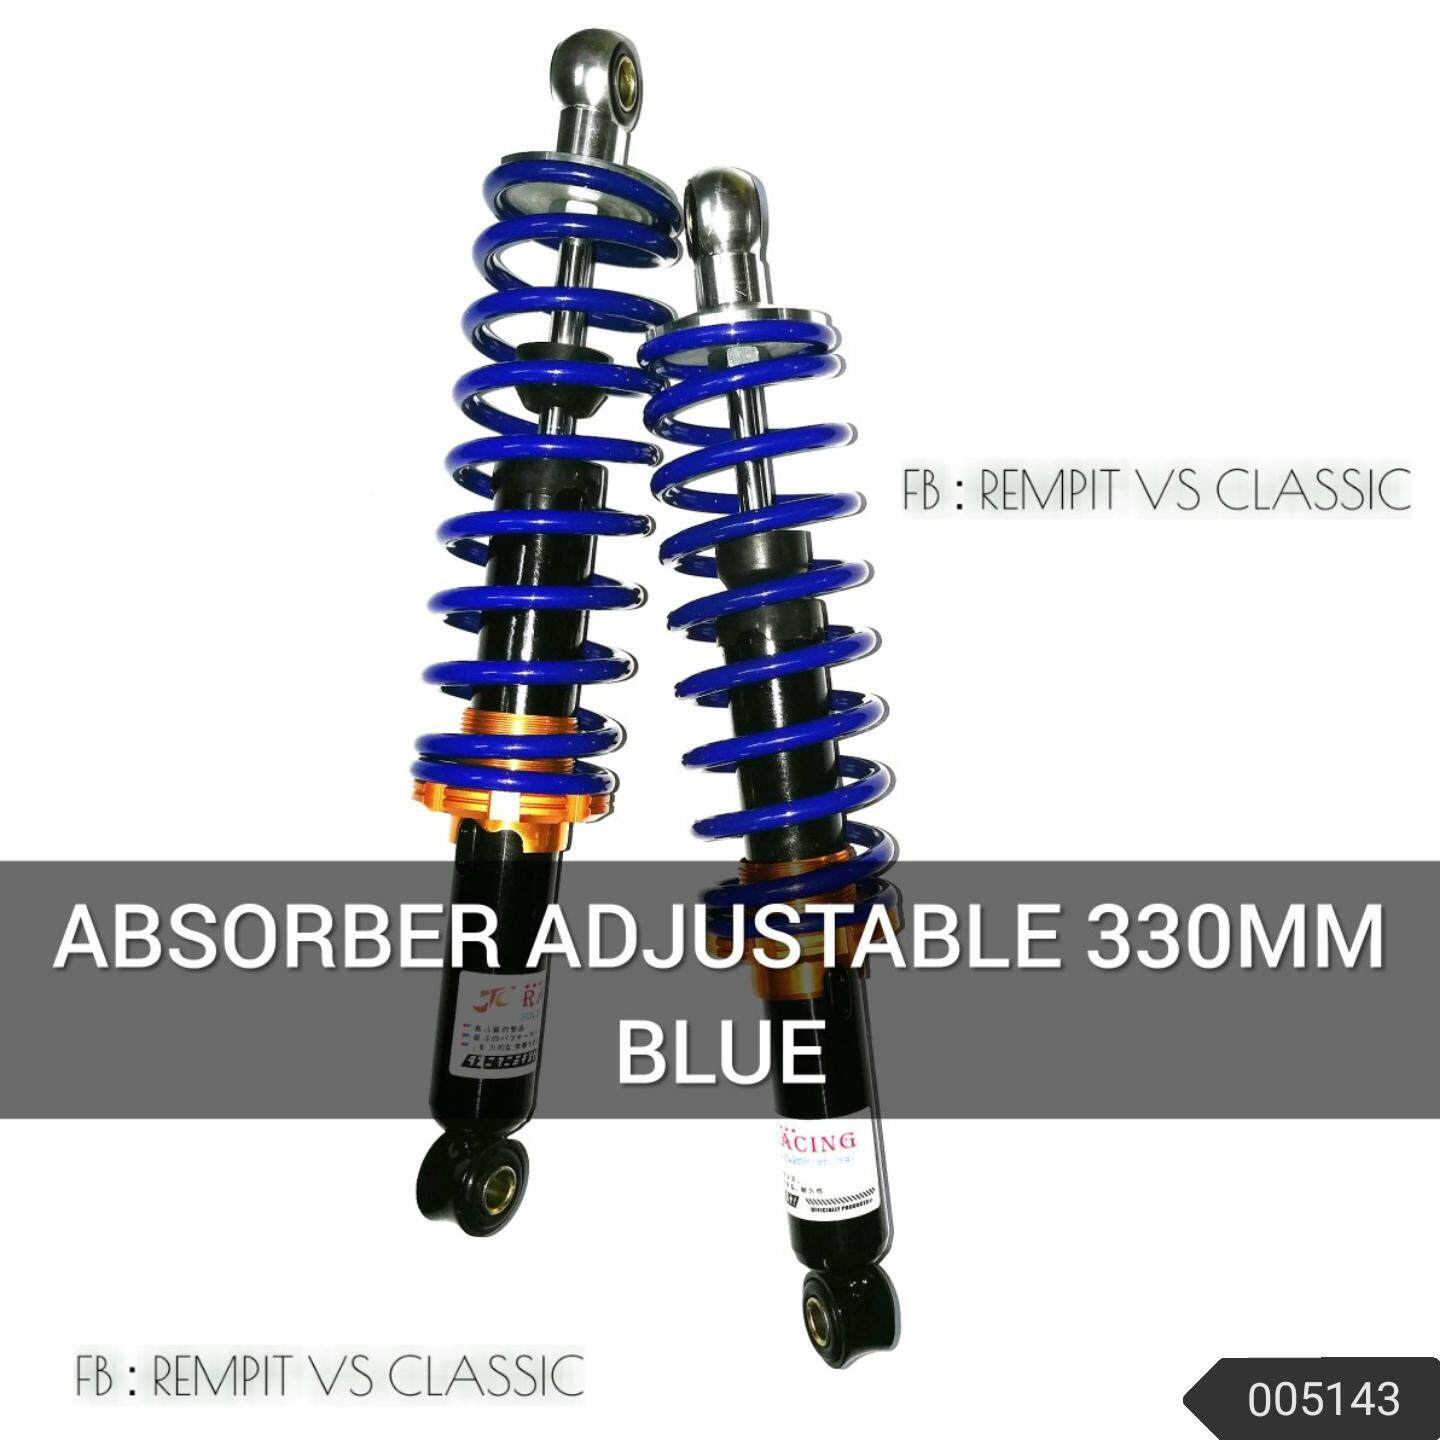 ABSORBER ADJUSTABLE 330MM Malaysia